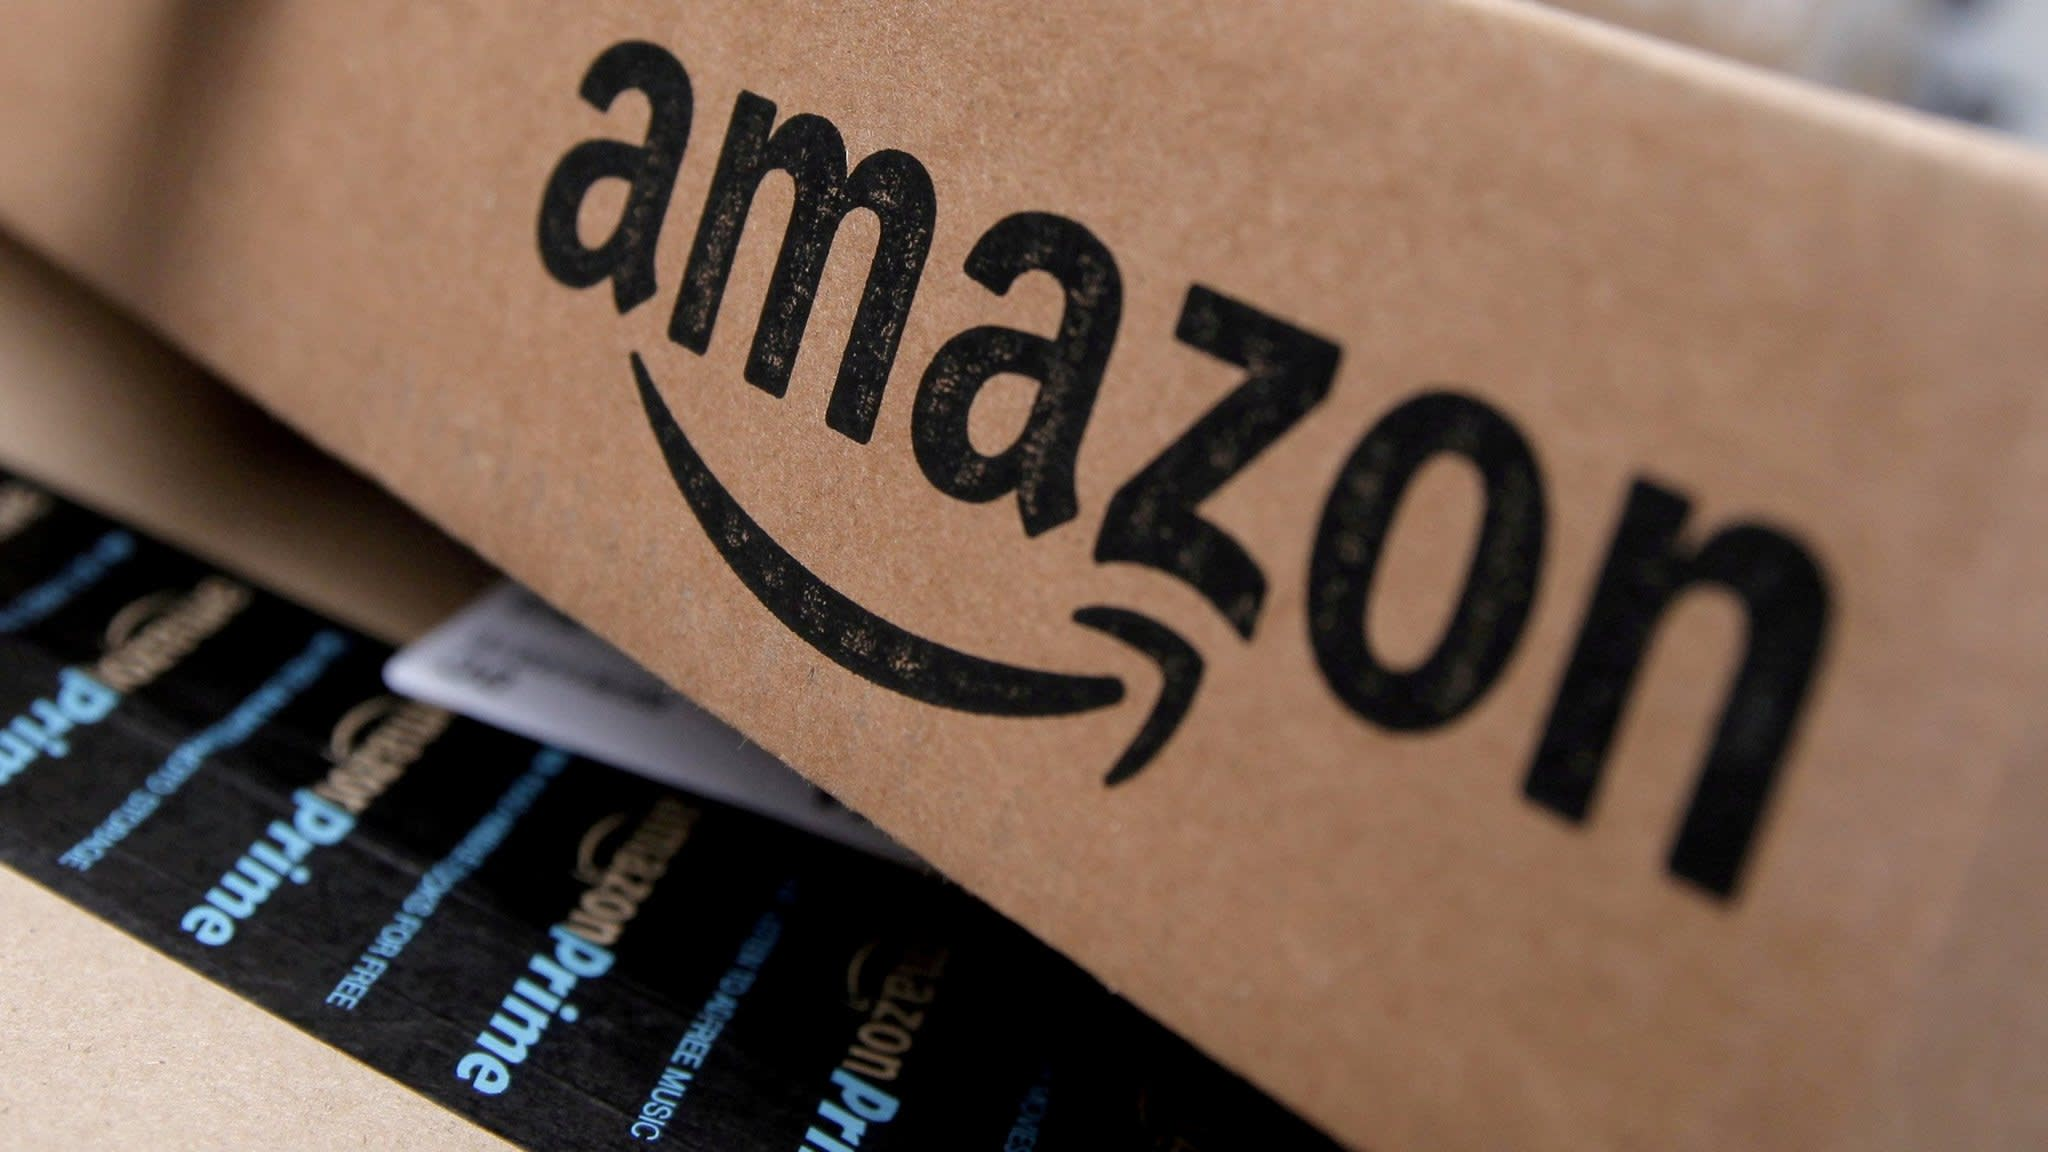 Amazon investigates claims over bribes to employees